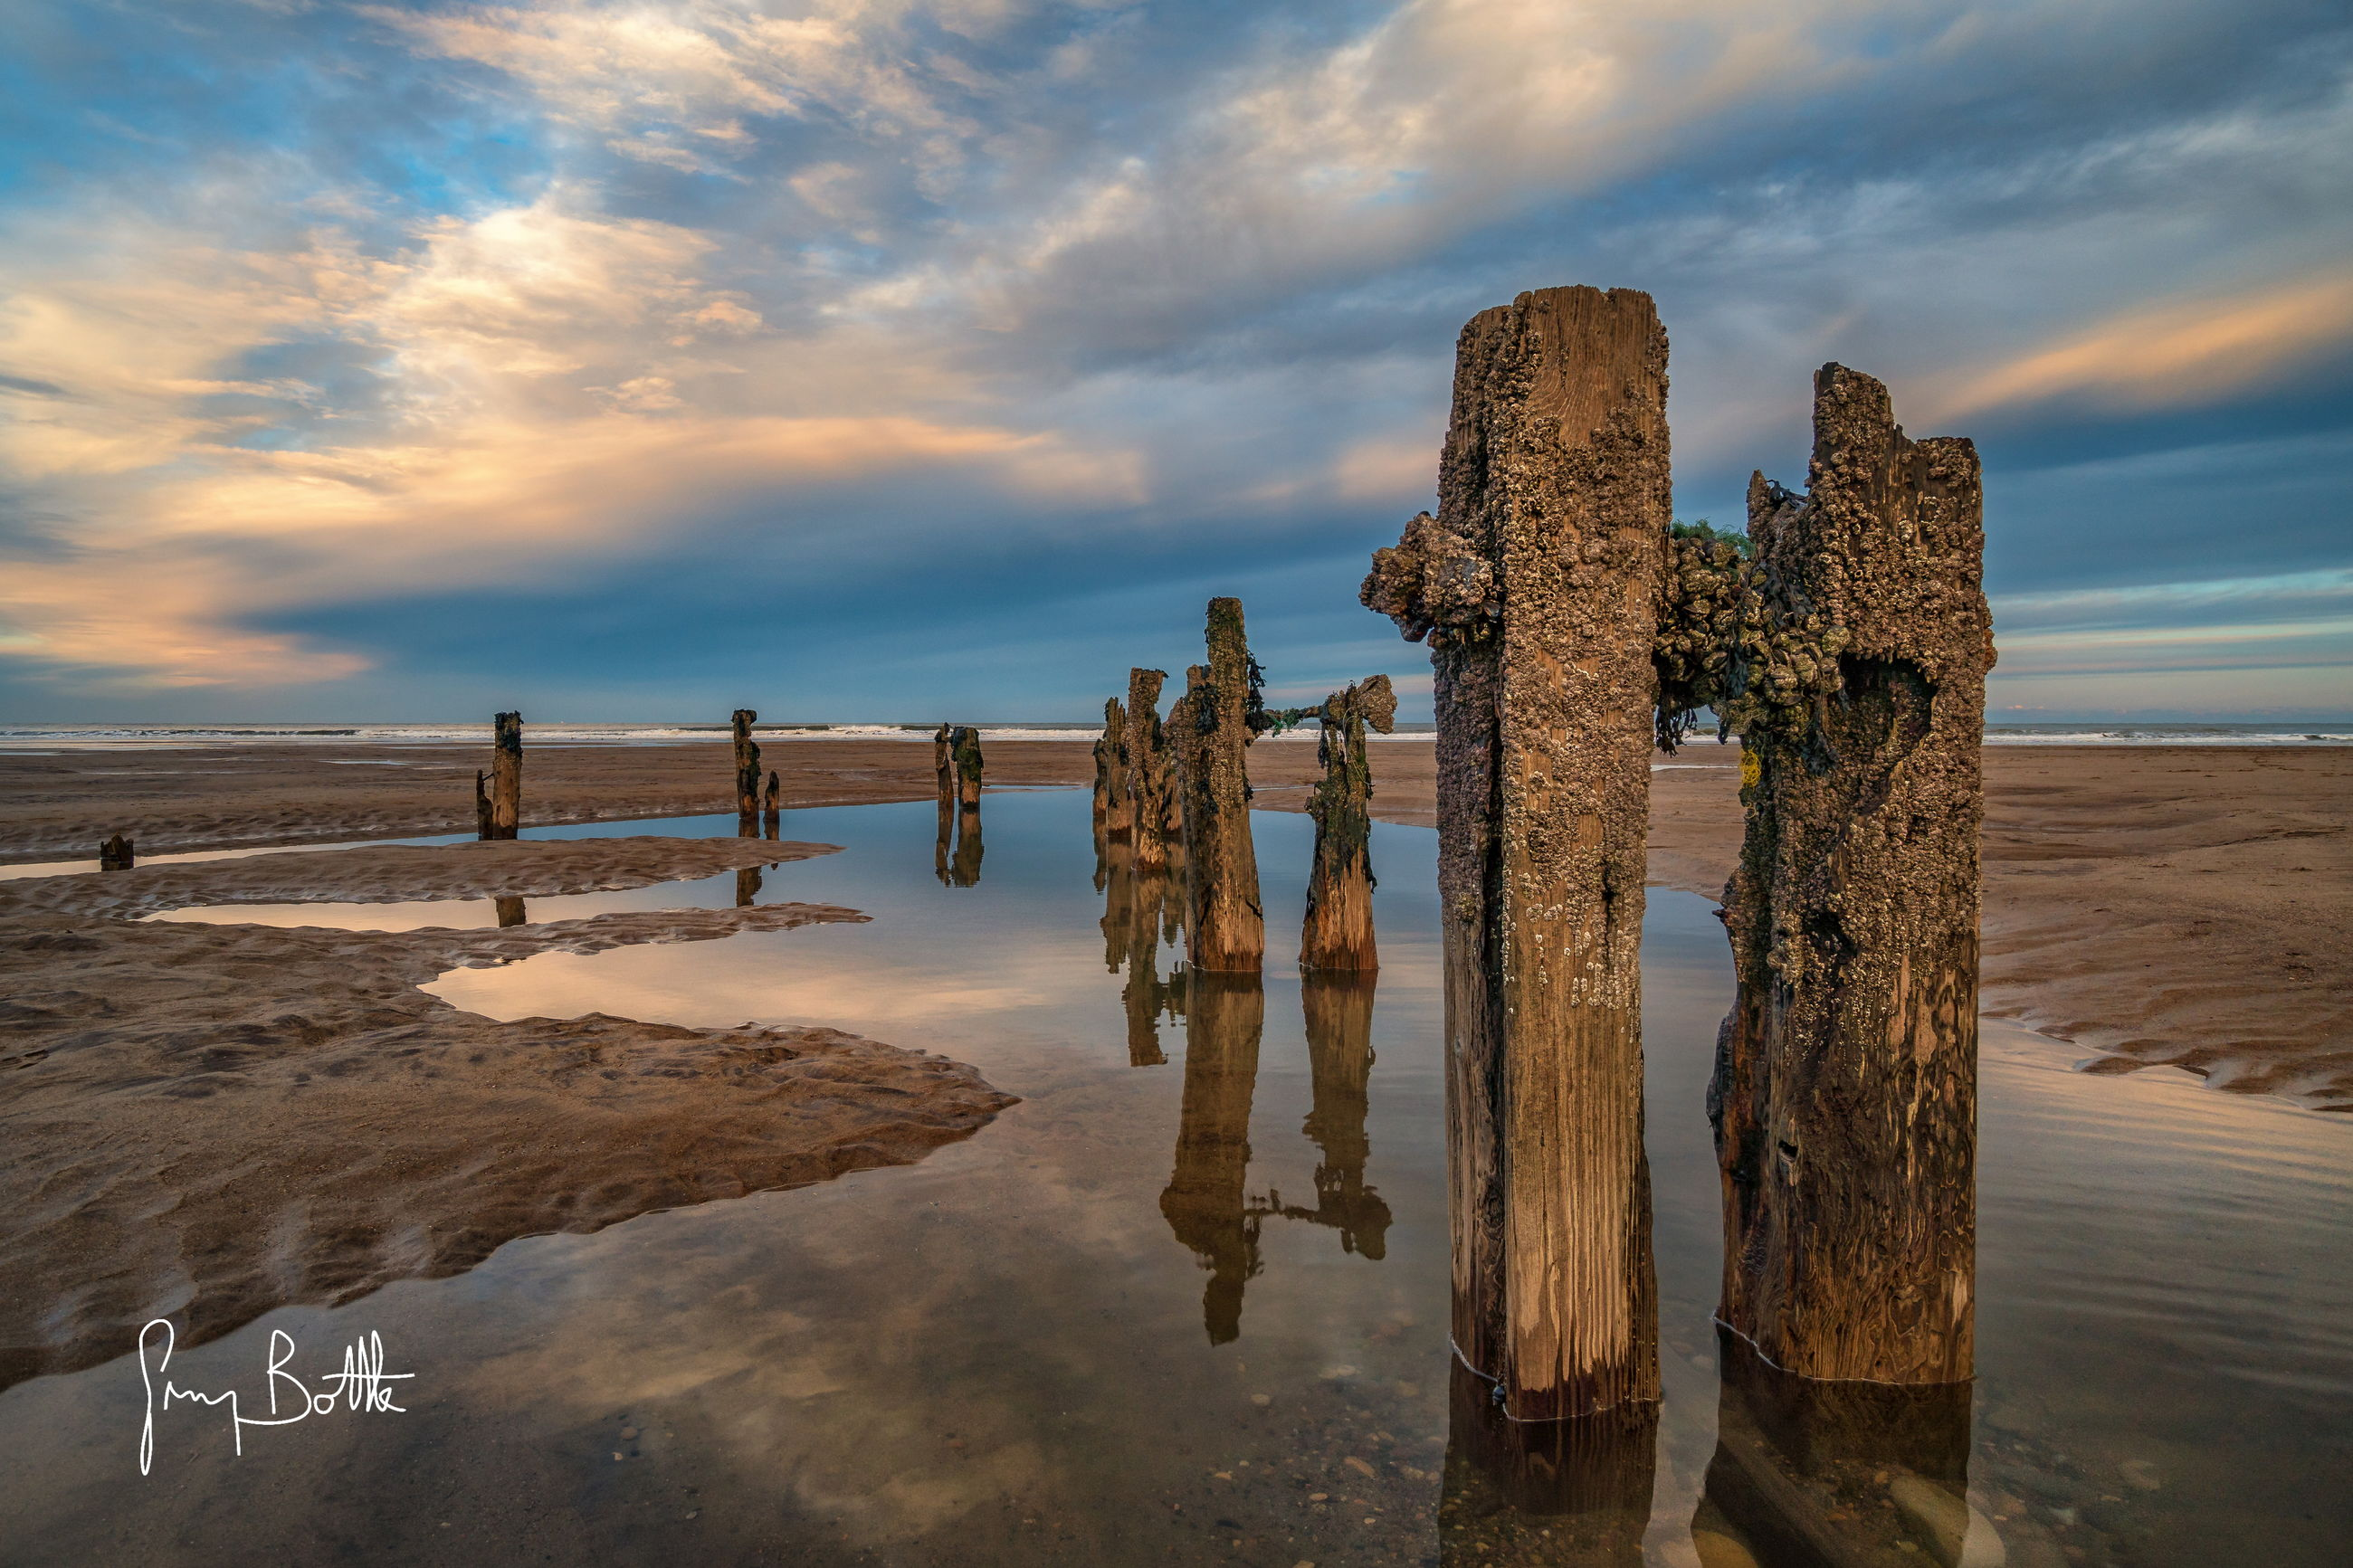 sky, cloud - sky, beach, tranquility, outdoors, nature, water, sea, no people, tranquil scene, day, scenics, sand, horizon over water, wooden post, beauty in nature